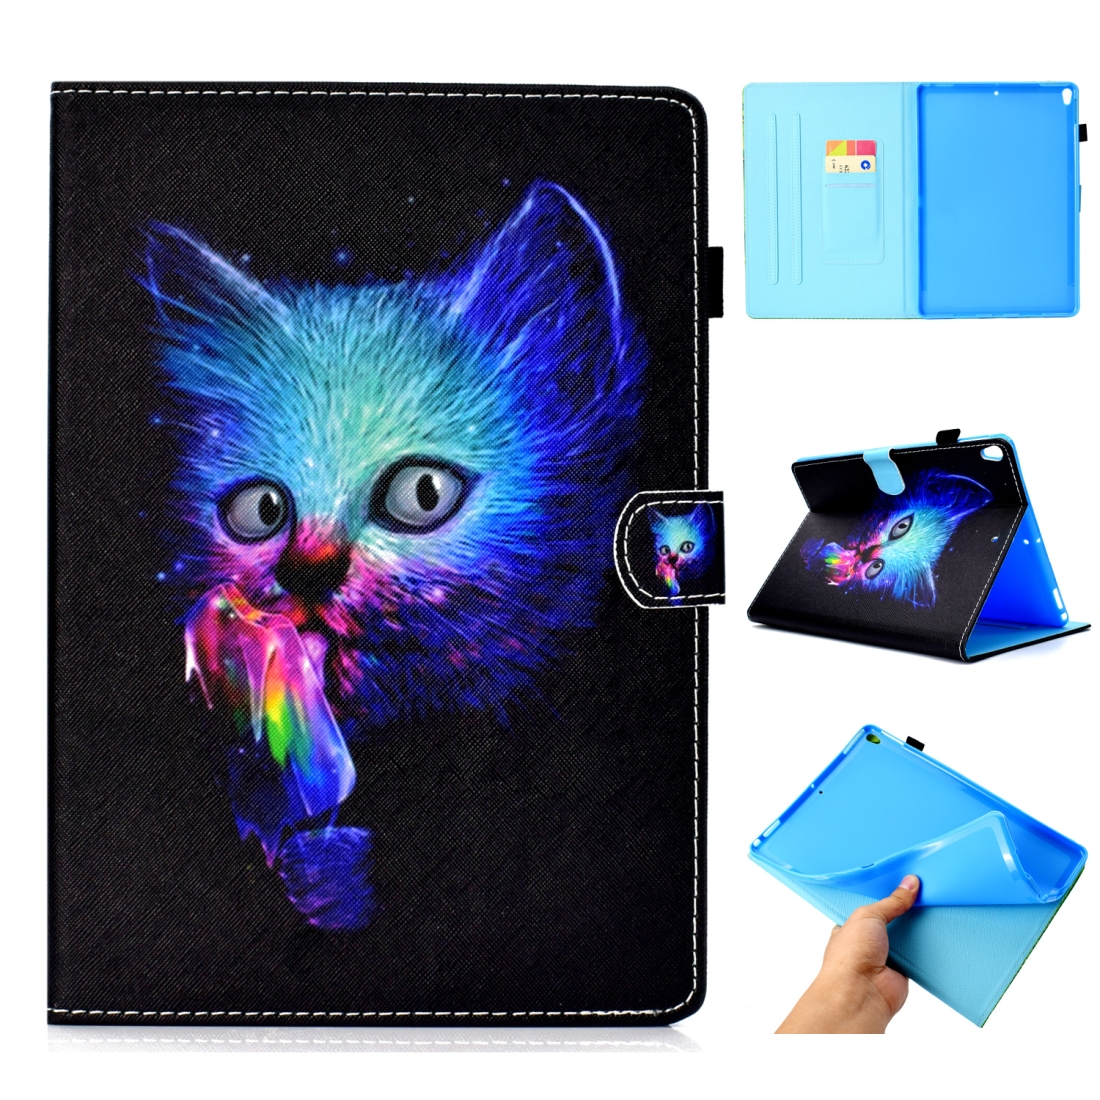 Artsy Leather iPad Air 3 Case (10.5 Inch) 2017/2019 Artsy Design & Auto Sleep Function (Super Cat)